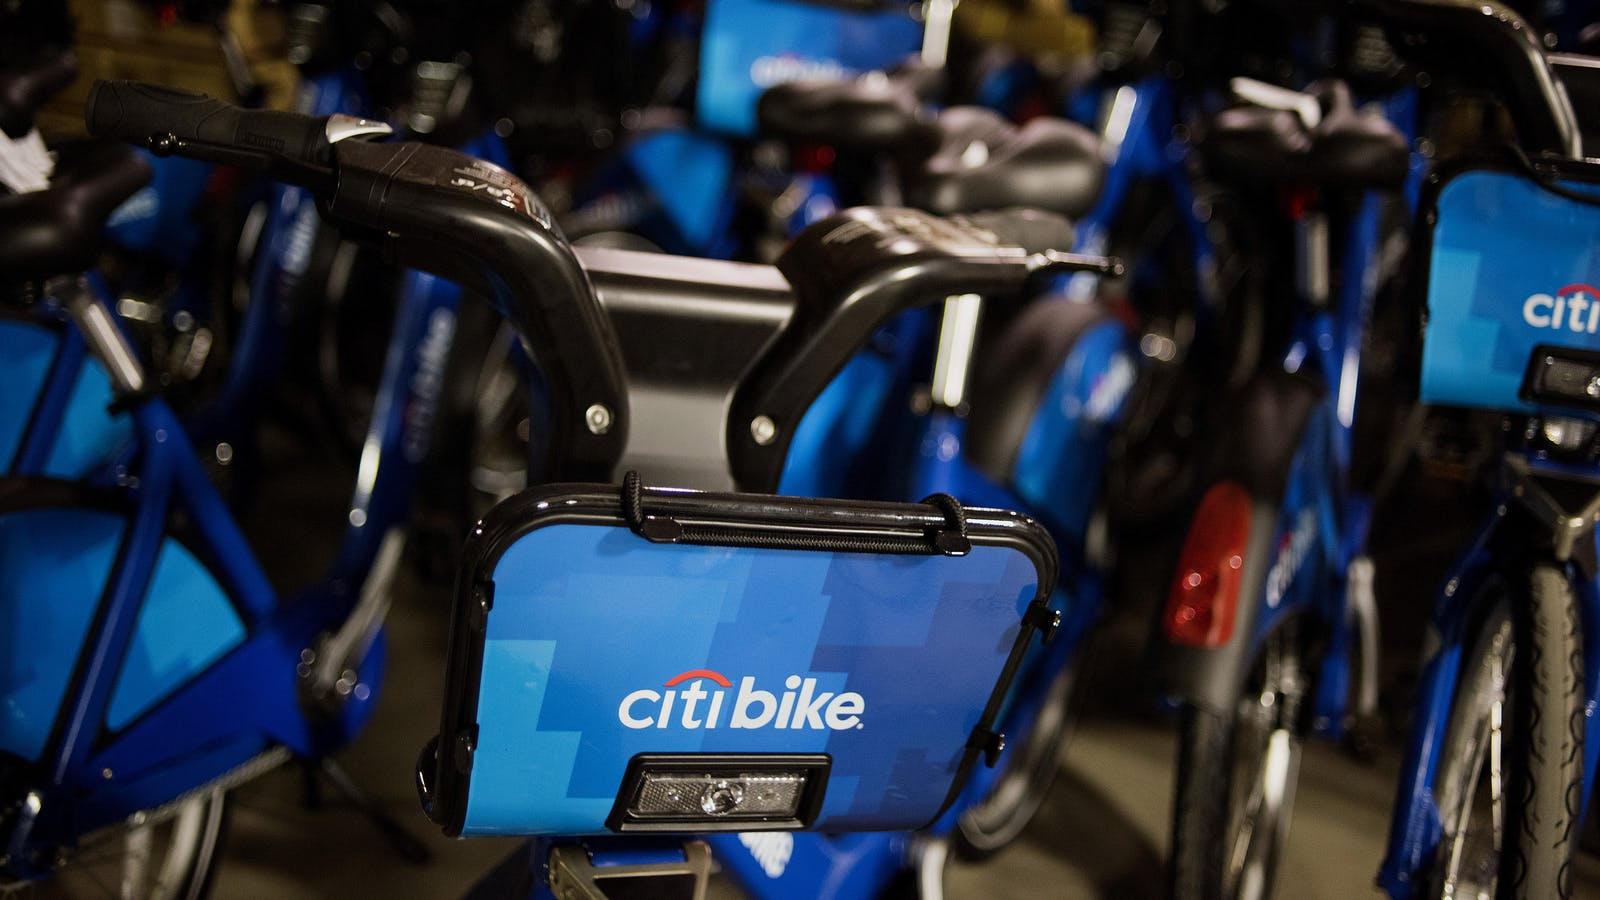 Citibike bicycles, which are operated by Motivate. Photo by Bloomberg.